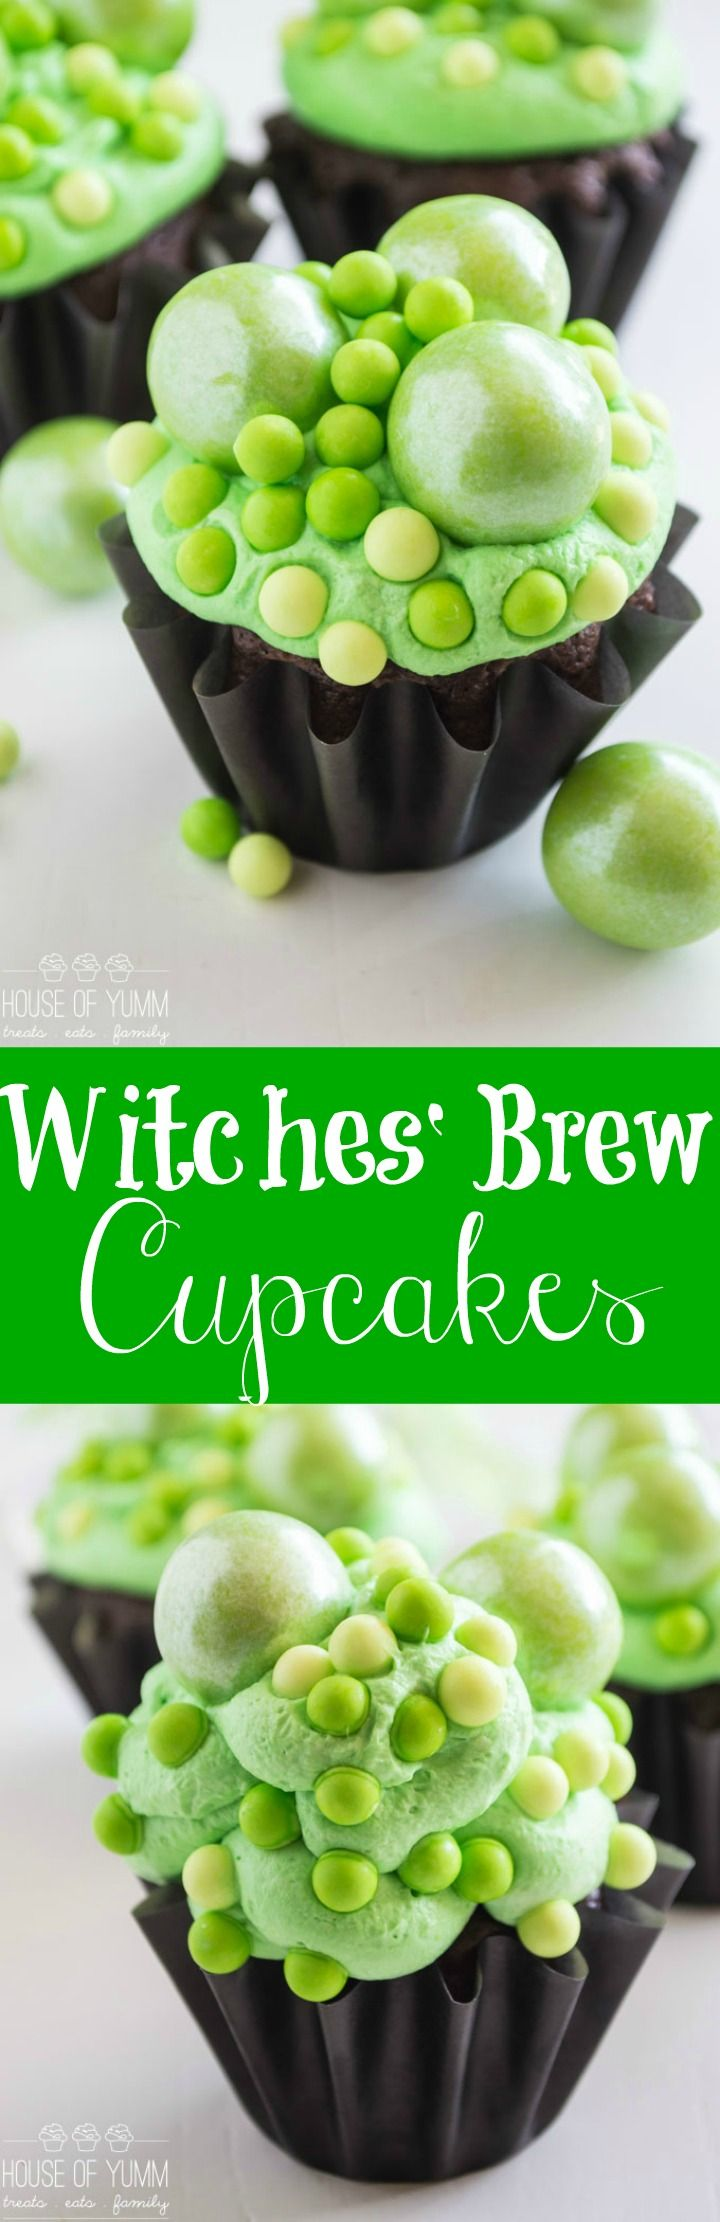 Witches' Brew Cupcakes, Bubbly Green Witches' Brew Cupcakes perfect for Halloween!